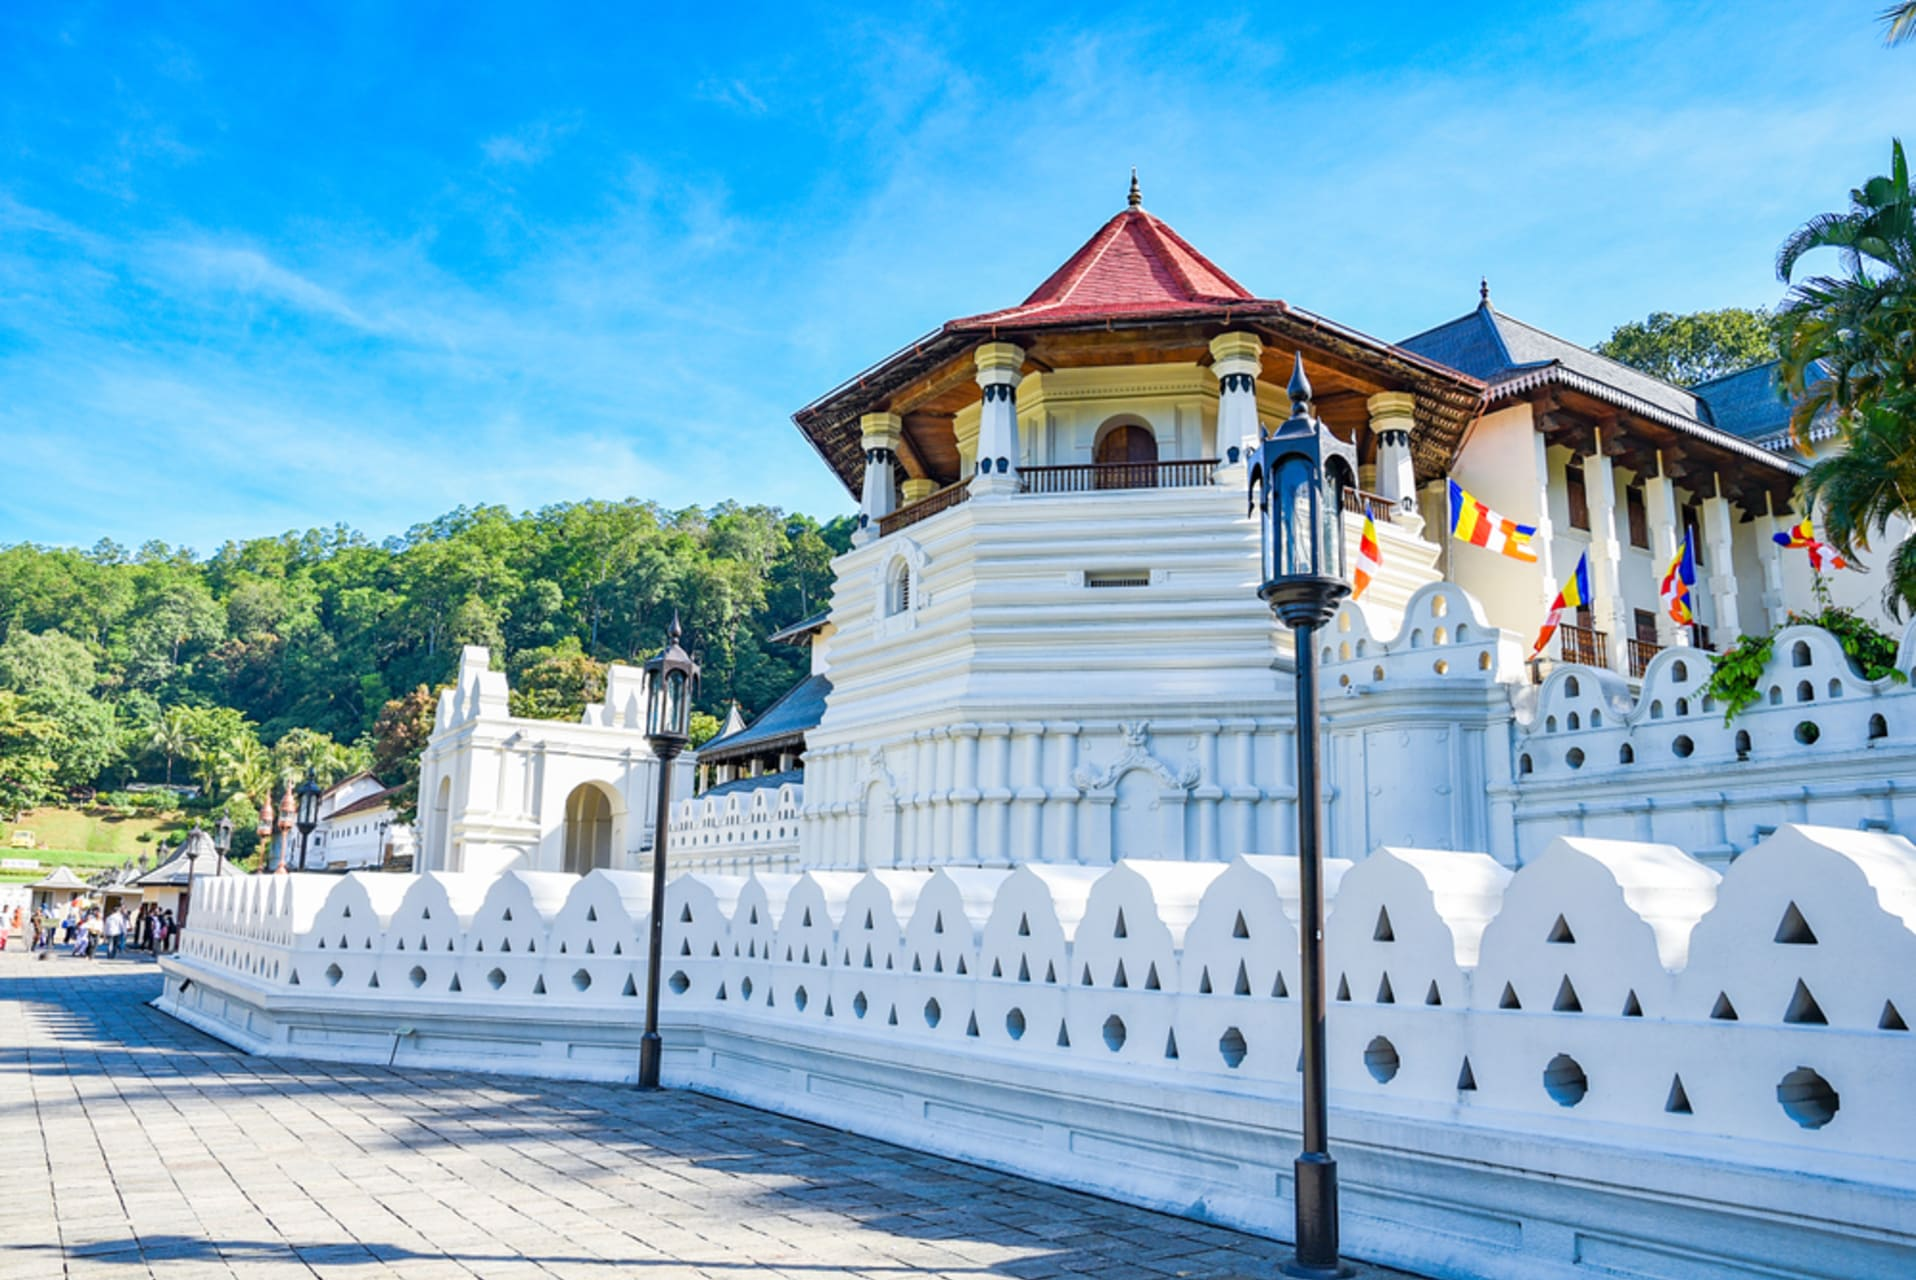 Kandy - Local exposure in the cultural city of Kandy, Sri Lanka